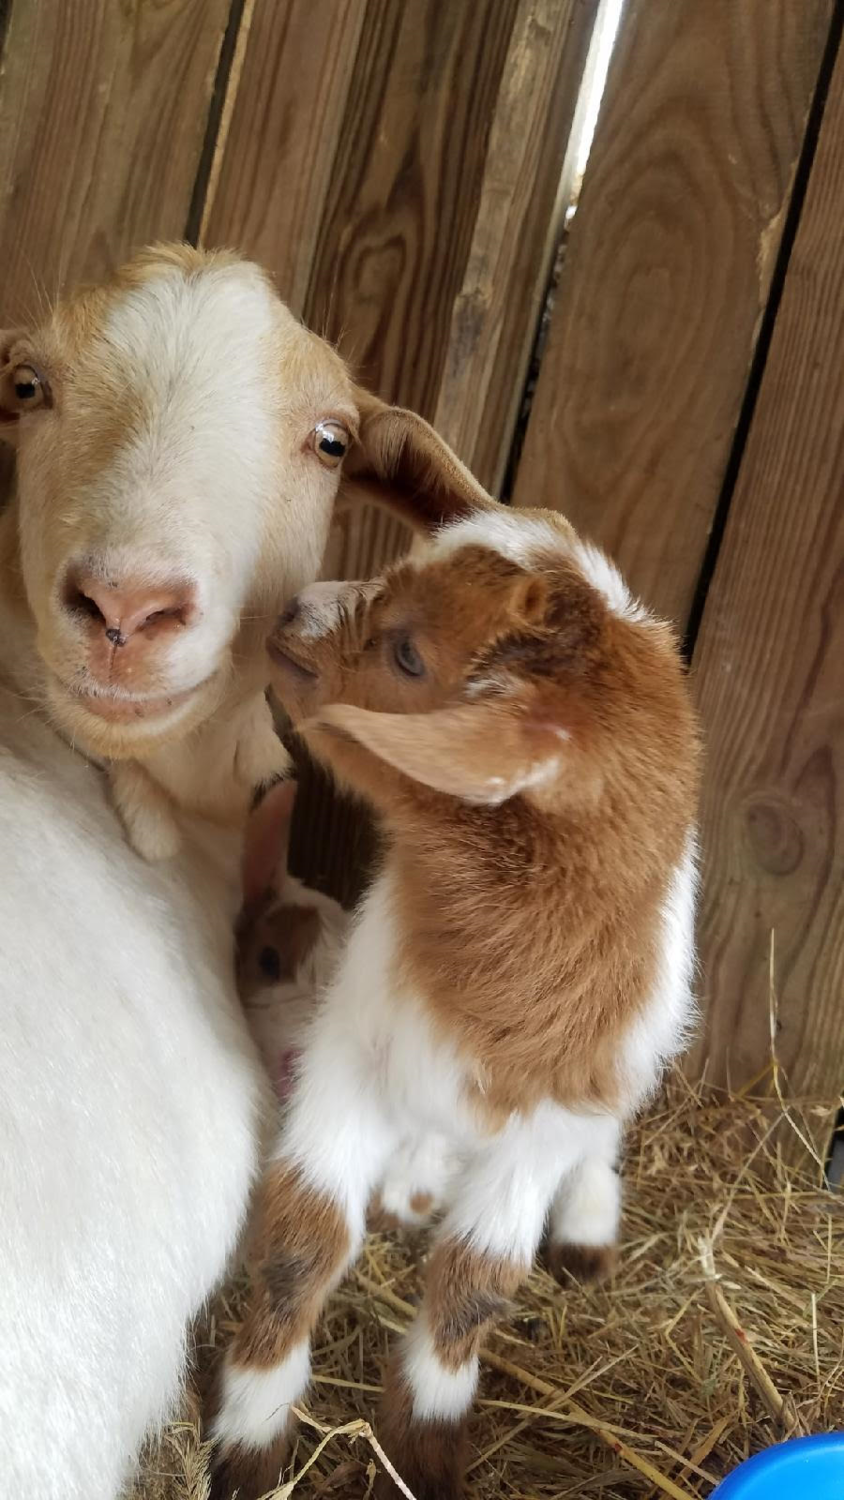 baby goat9.png